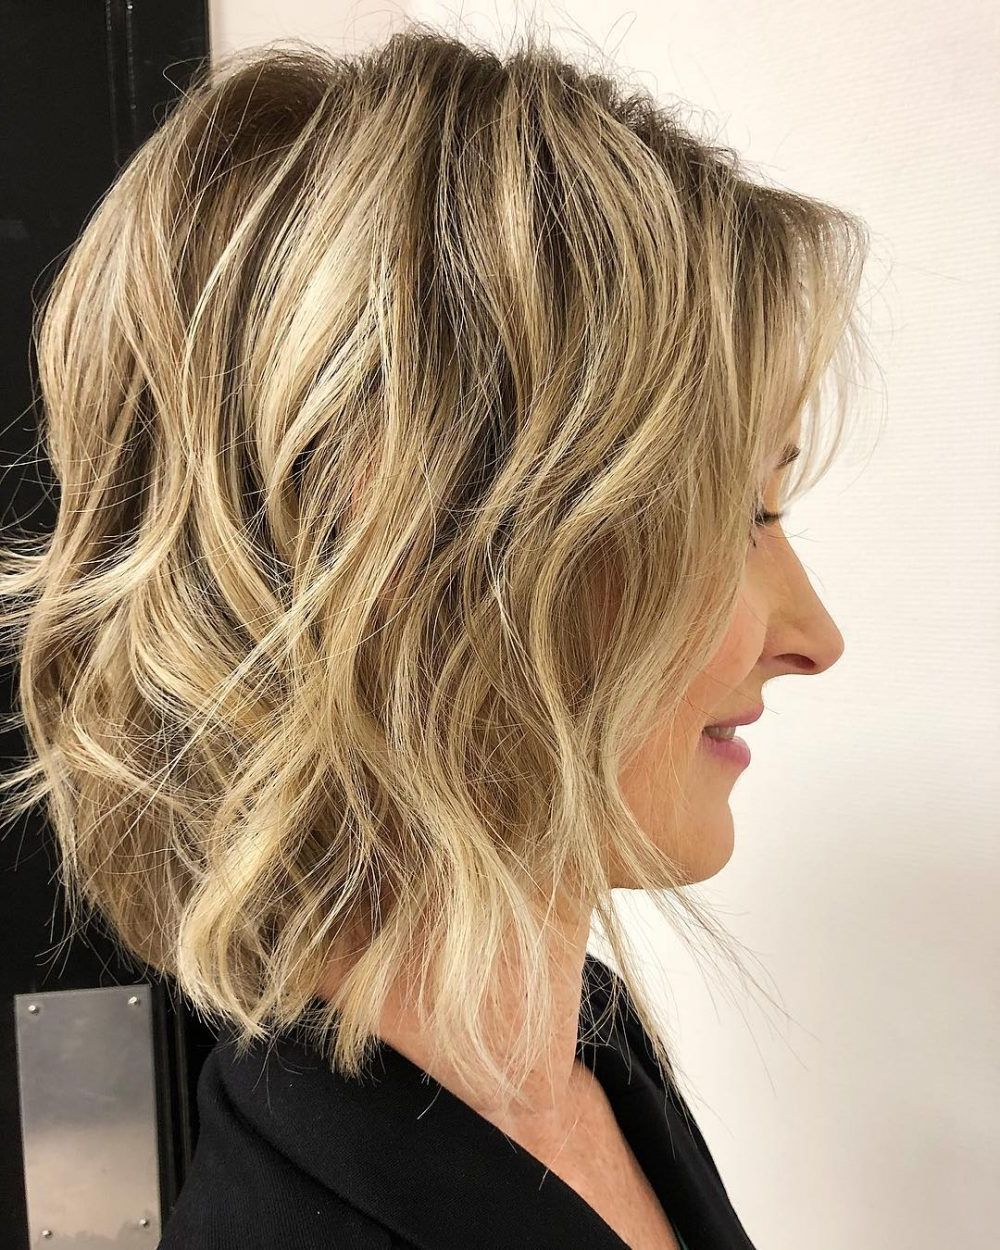 43 Perfect Short Hairstyles For Fine Hair In 2019 In Most Popular Layered, Flipped, And Tousled Hairstyles (View 5 of 20)